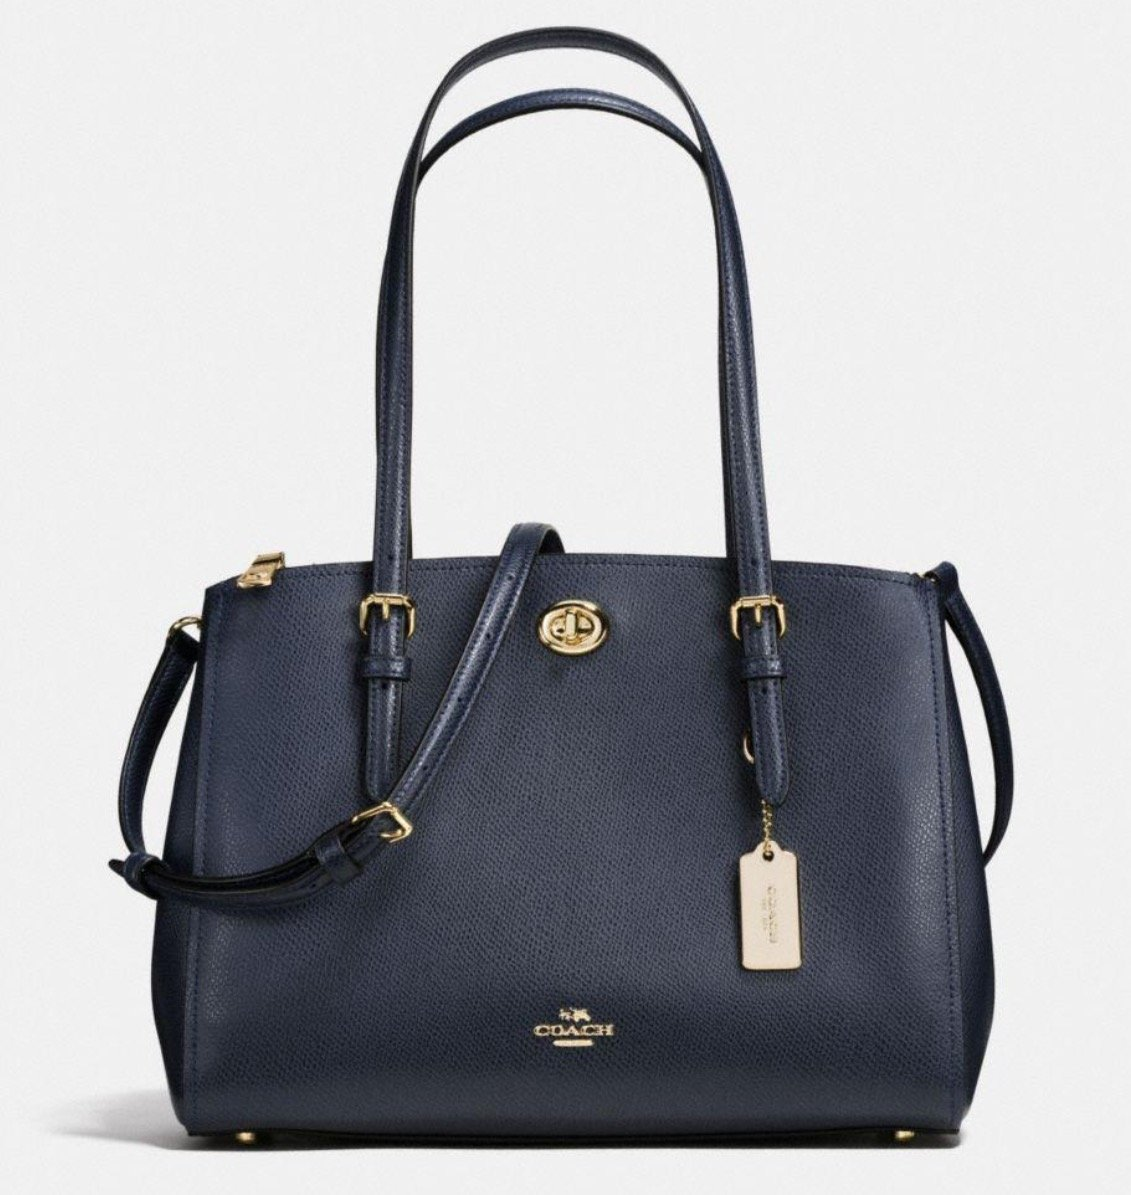 Coach Turnlock Carryall 29 in Crossgrain Leather Style No. 37782 (Navy) by Coach